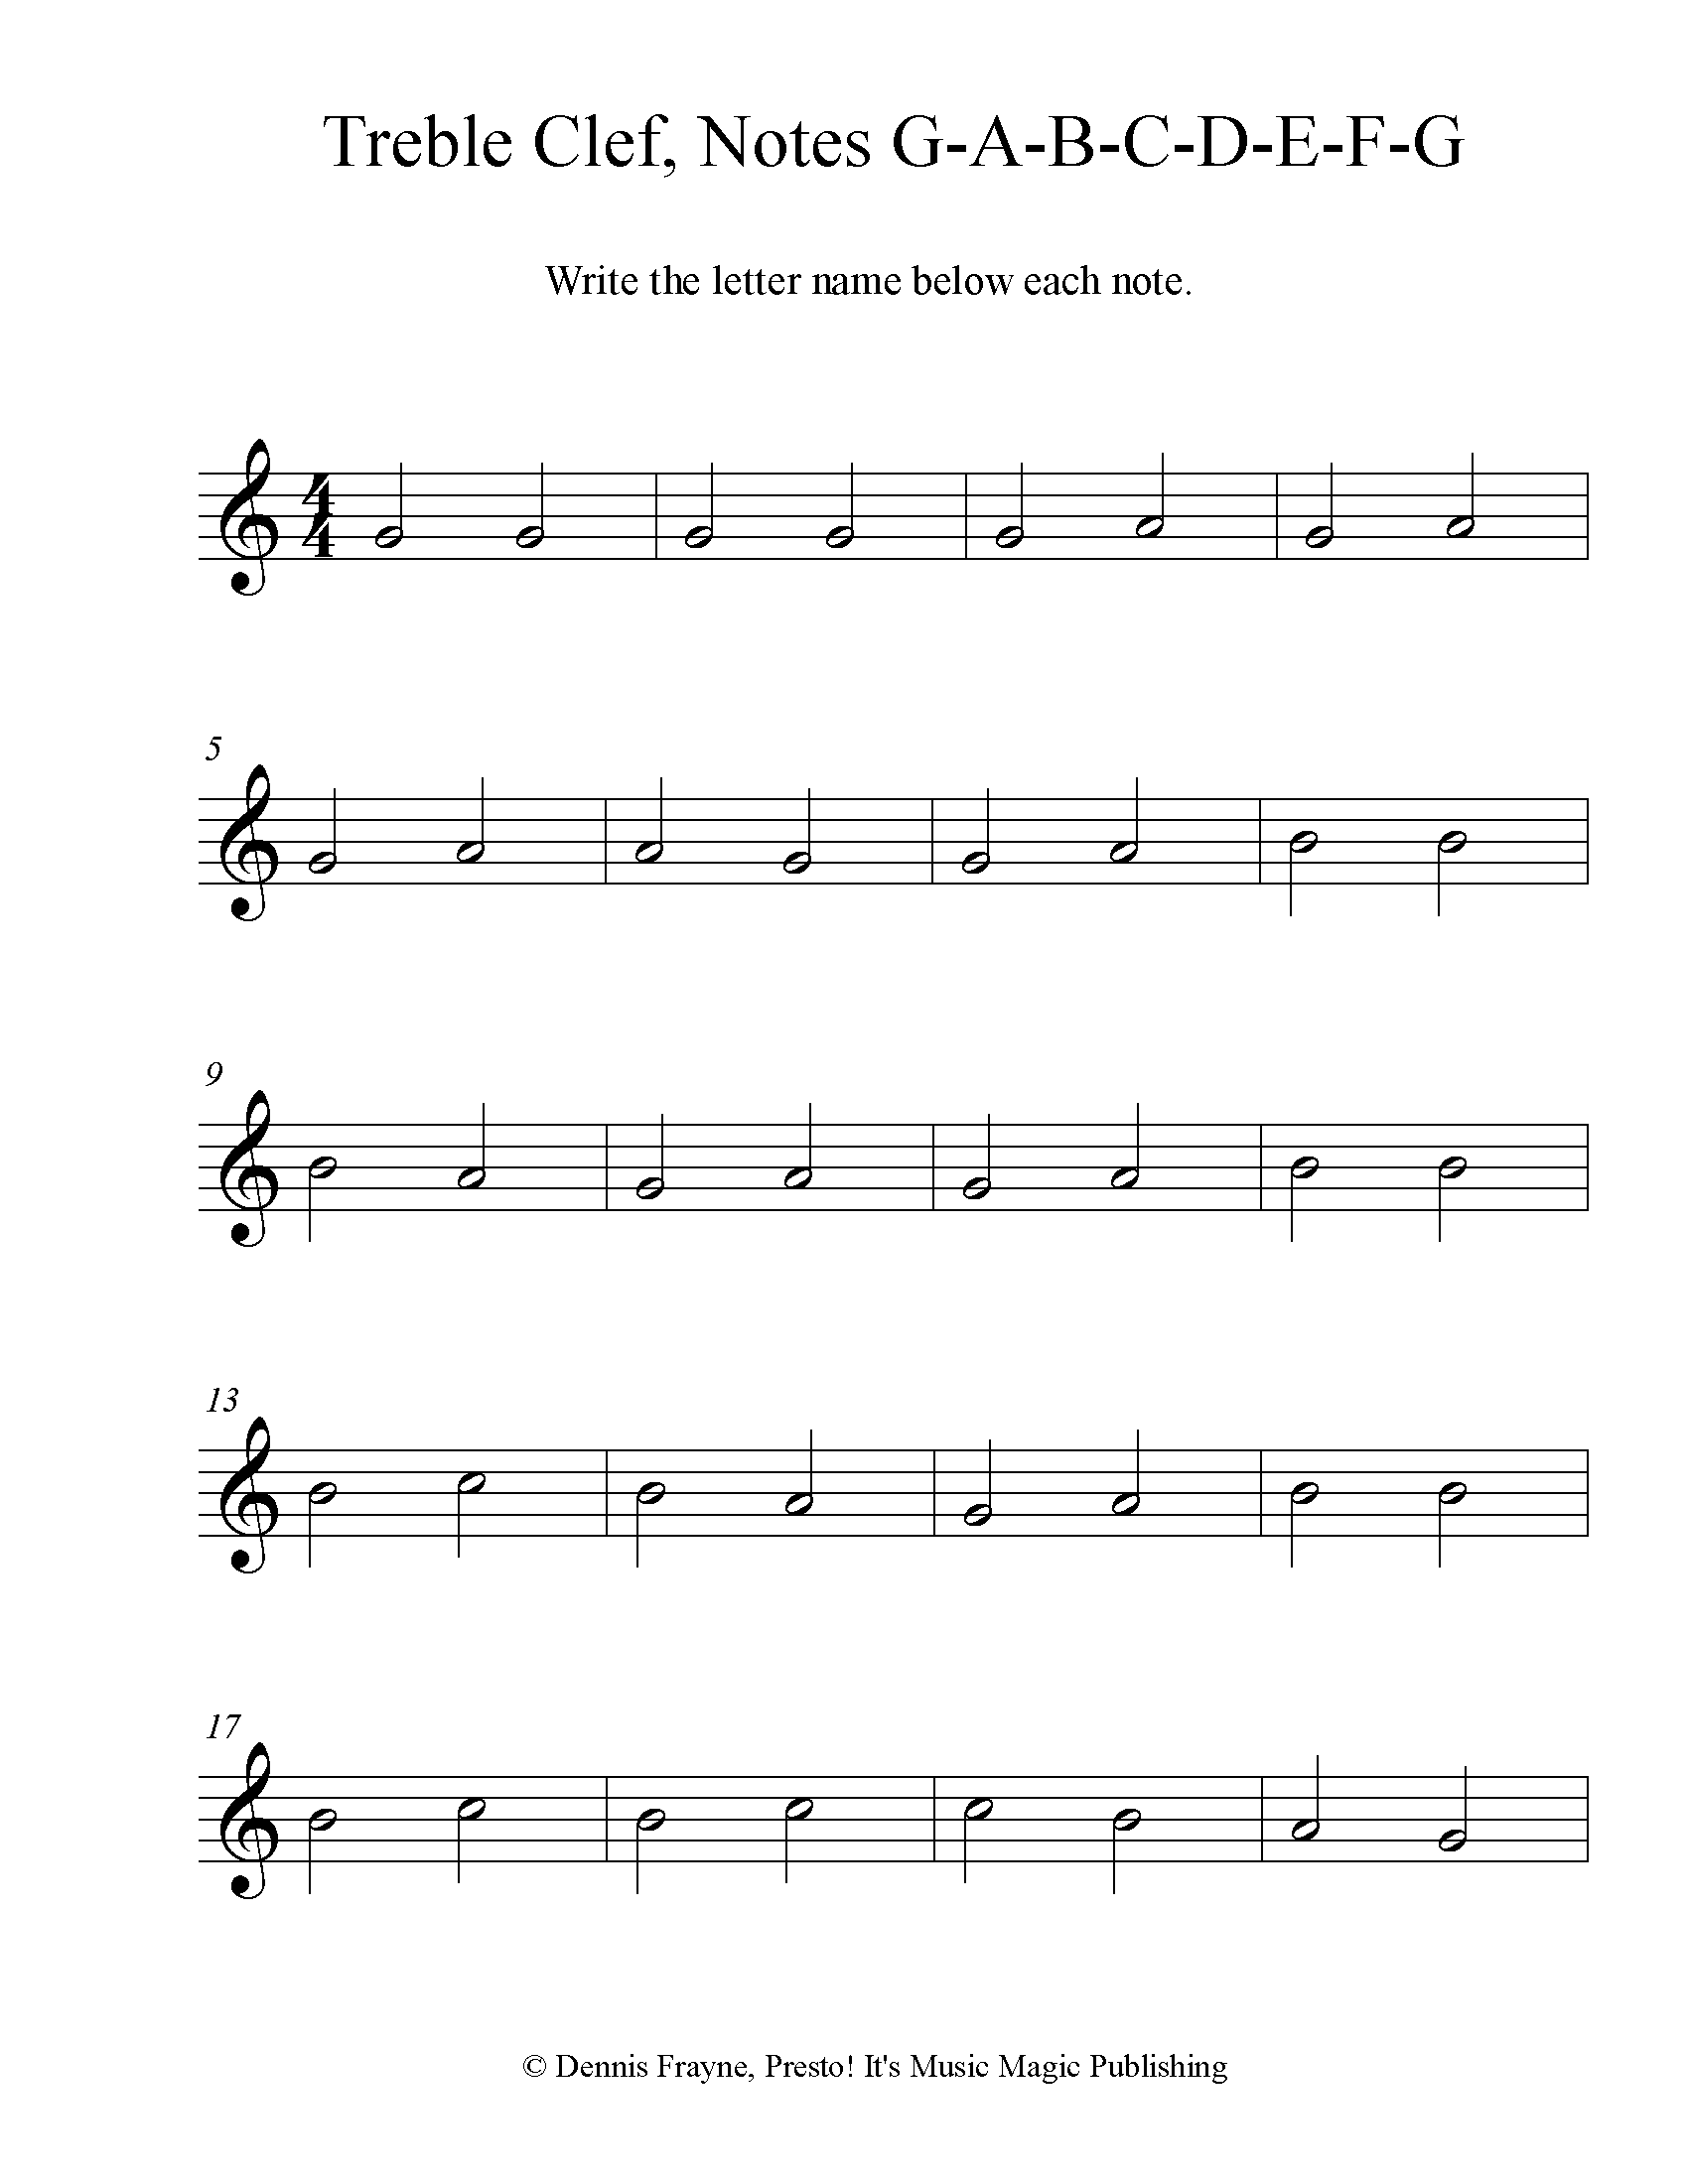 Treble Clef Note Identification Practice Worksheet, Level 2 4 pages